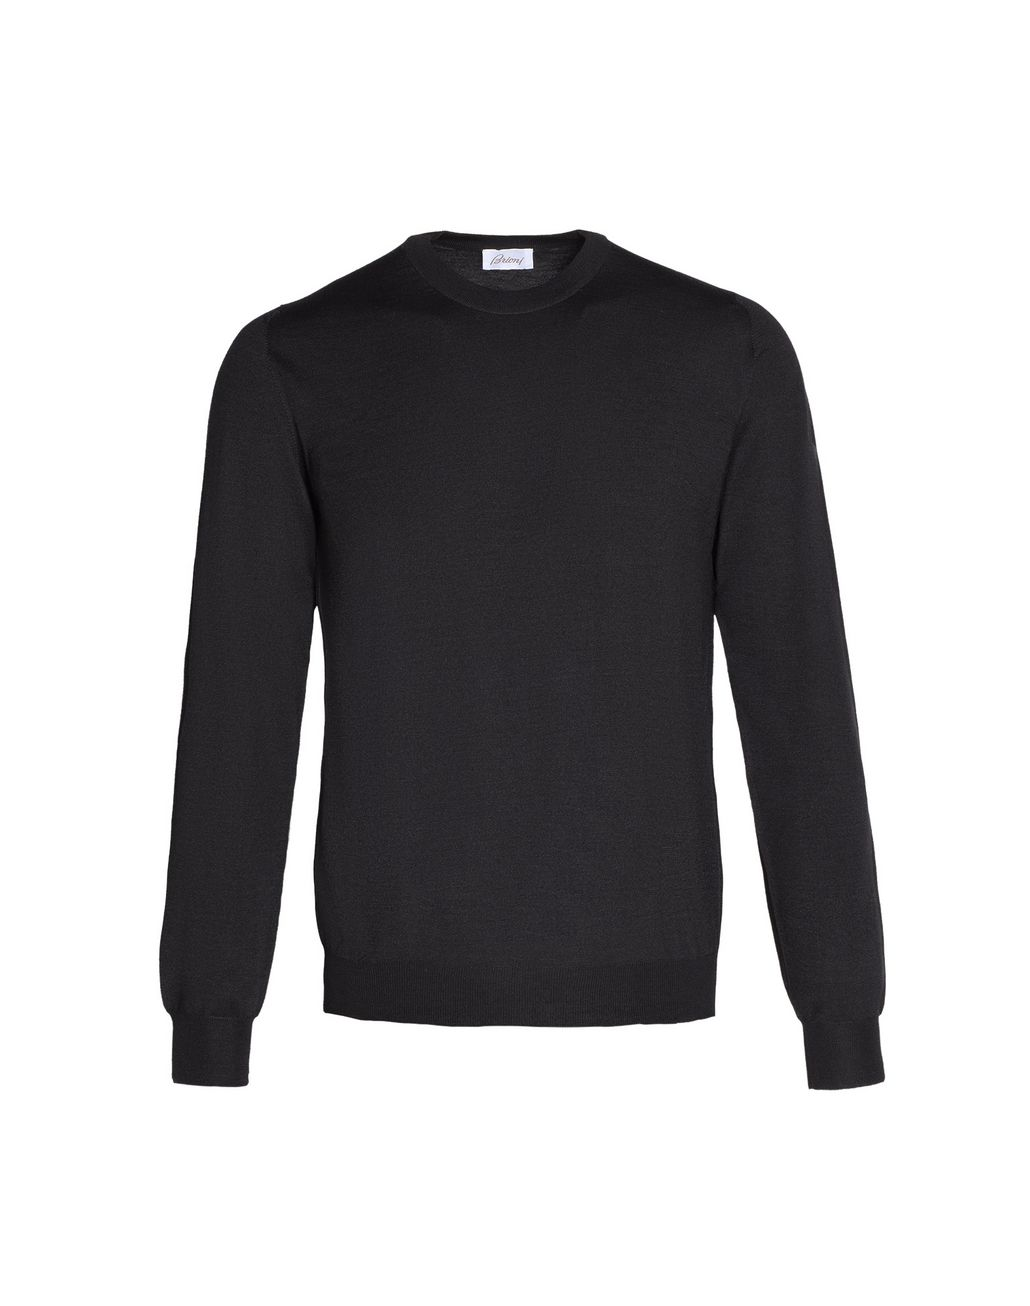 BRIONI 'Essential' Black Crew-Neck Sweater Knitwear [*** pickupInStoreShippingNotGuaranteed_info ***] f